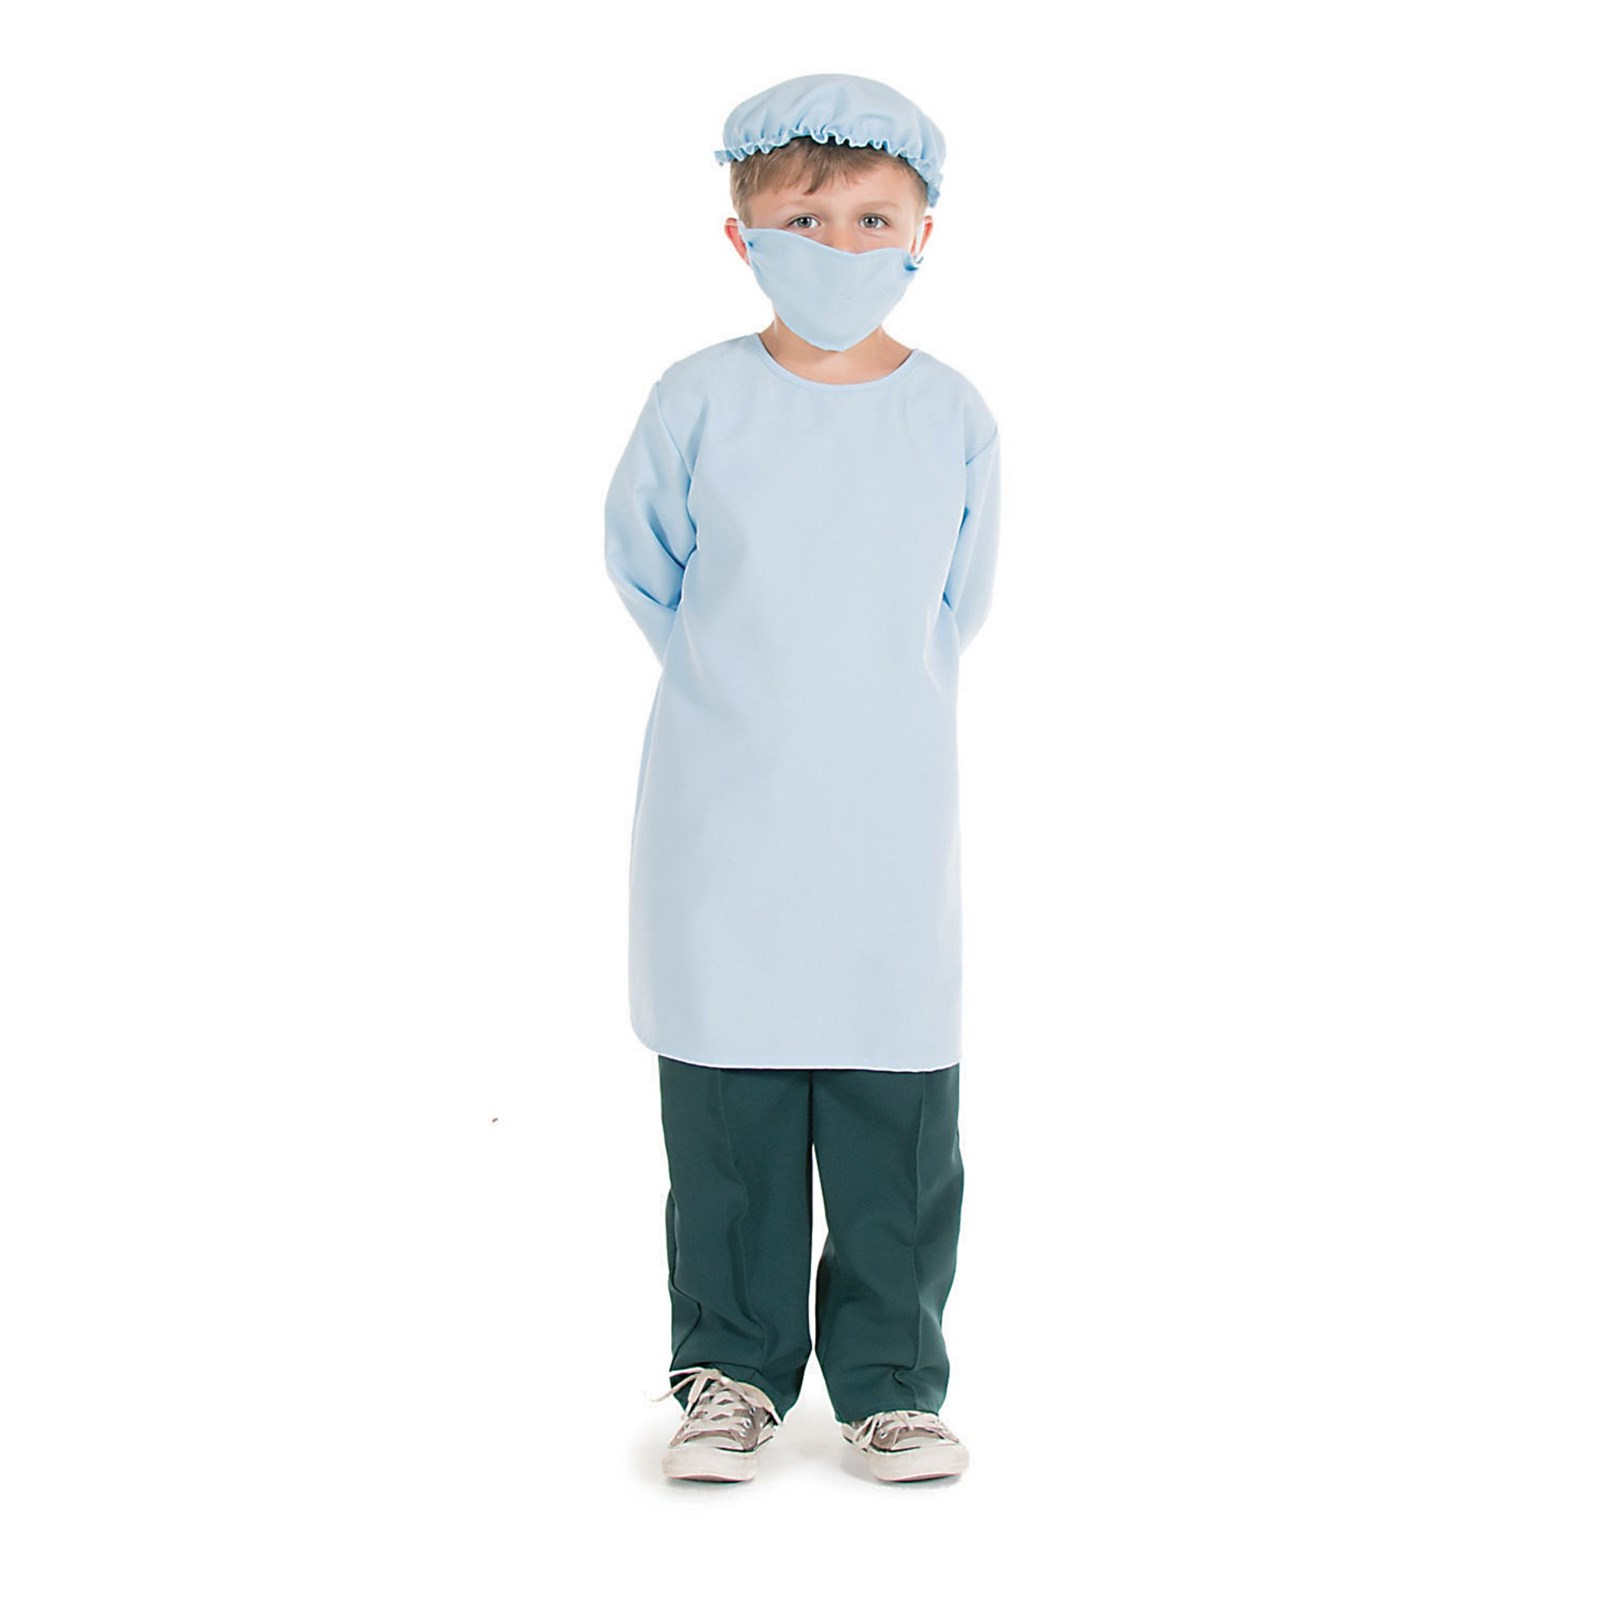 Surgeon Outfit - 5-7 Years